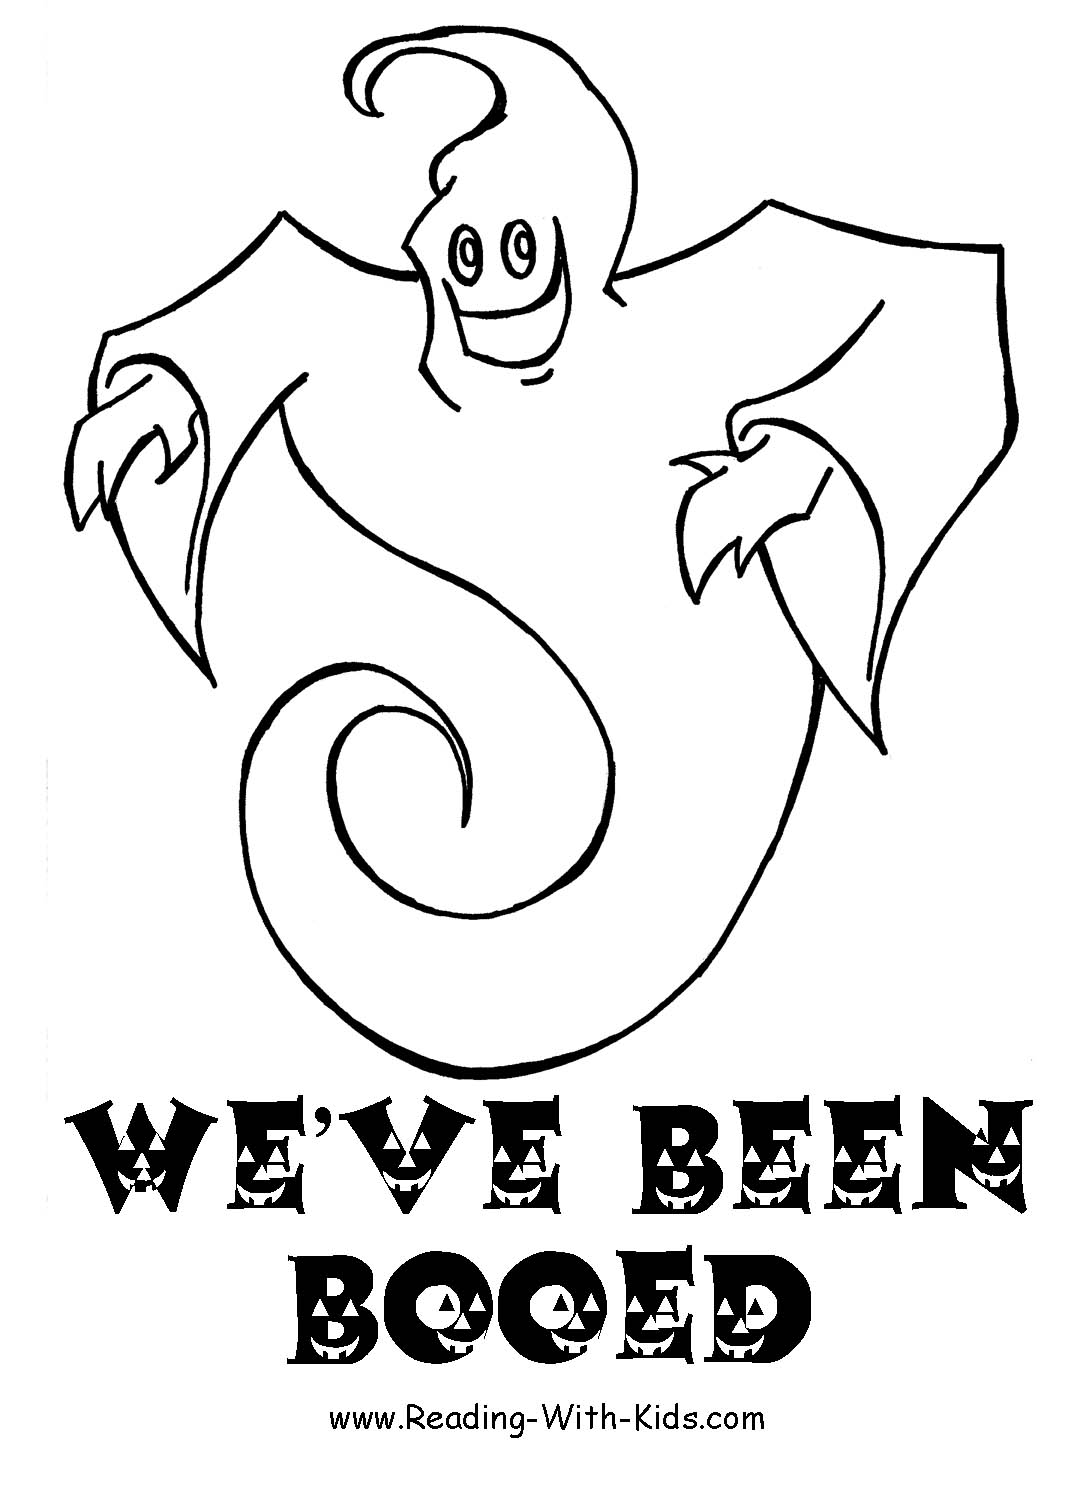 coloring pages on ghosts reading - photo#16